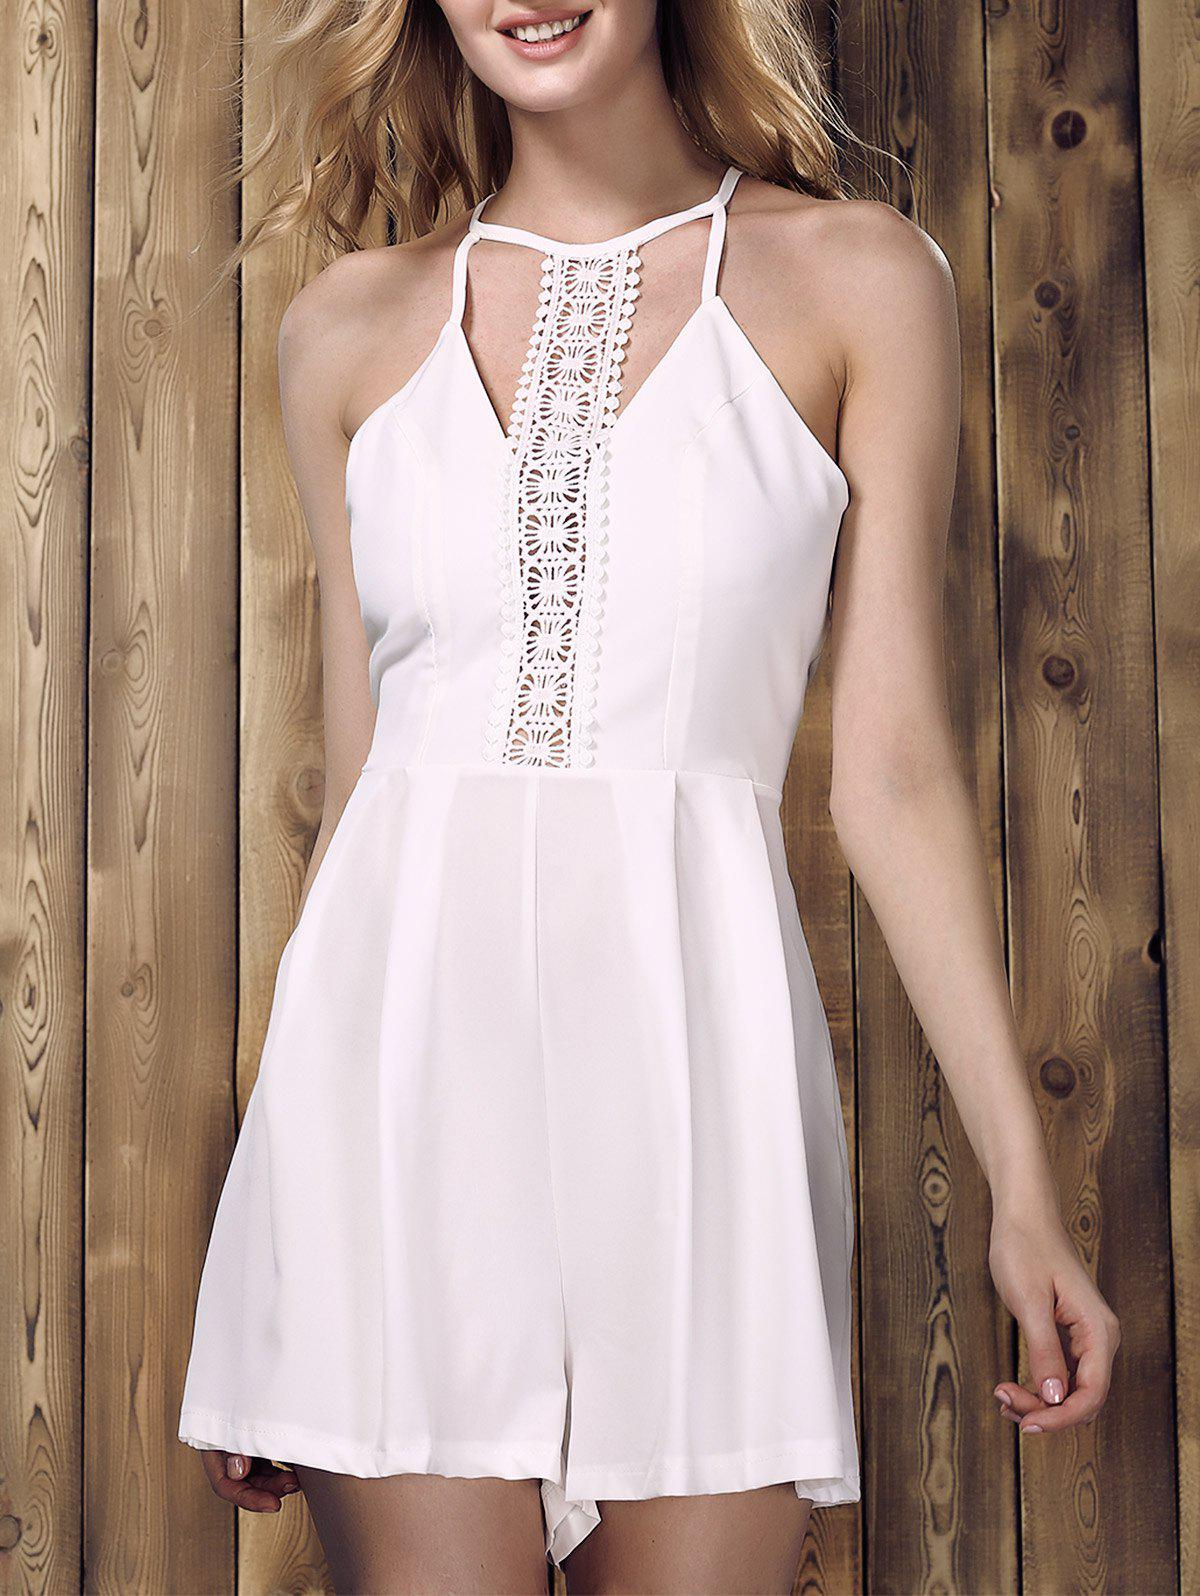 Chic Sleeveless Hollow Out Solid Color Lace Spliced Women's Romper - WHITE S